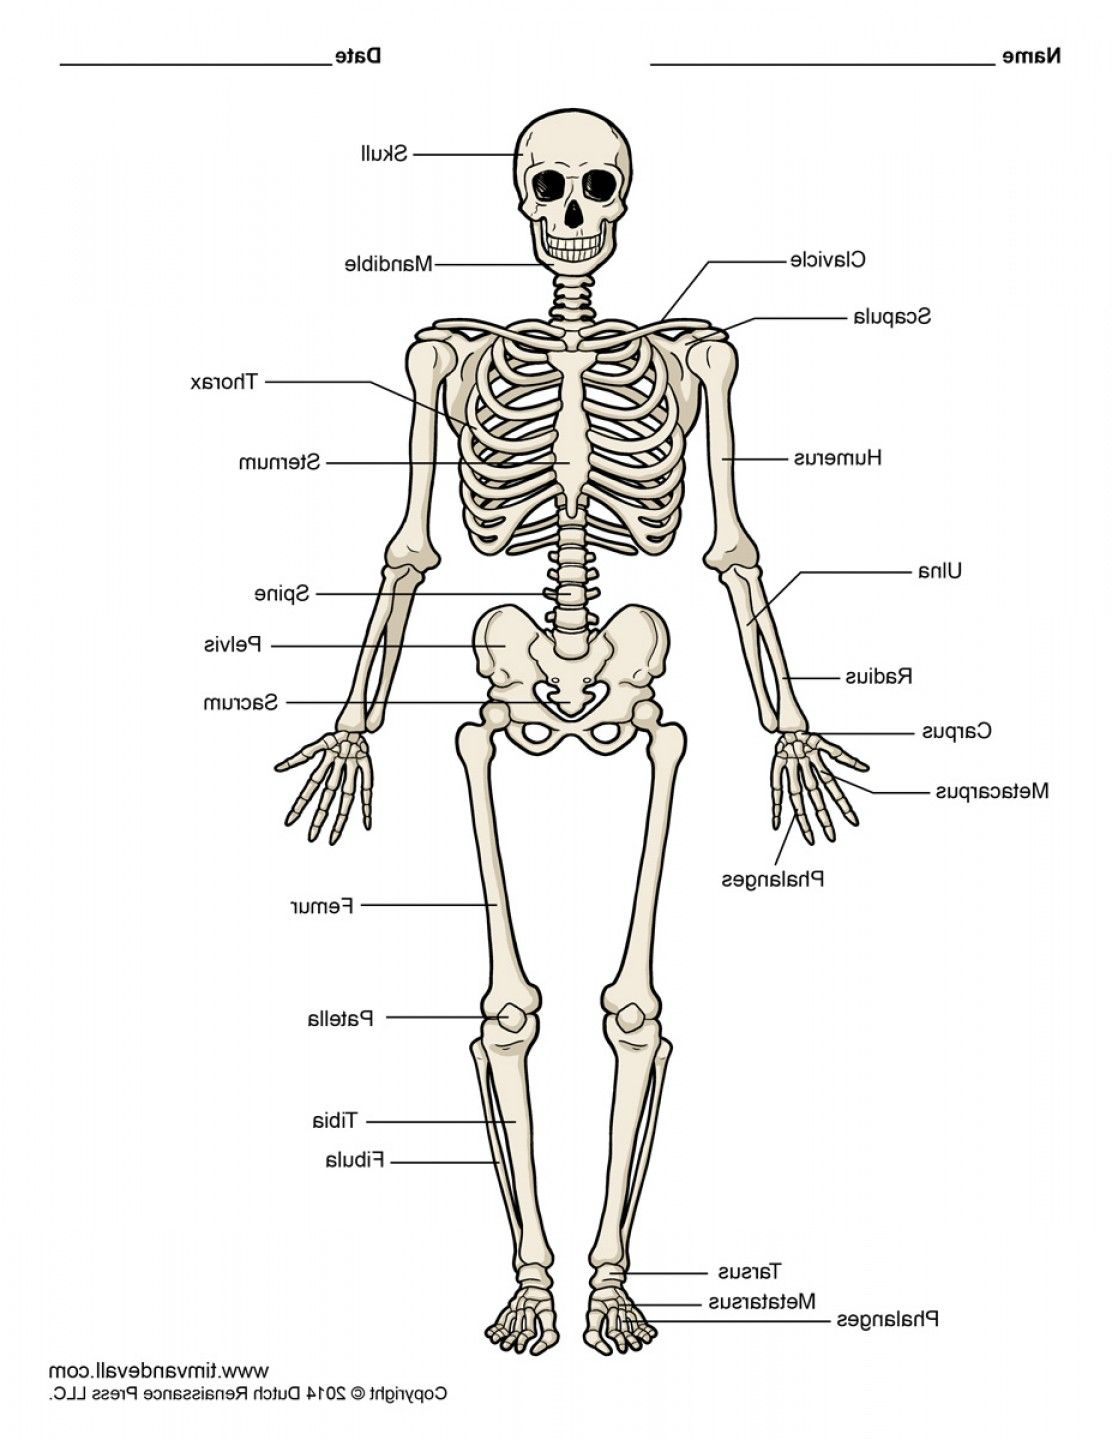 unlabeled diagram of the human skeleton unlabeled. Black Bedroom Furniture Sets. Home Design Ideas